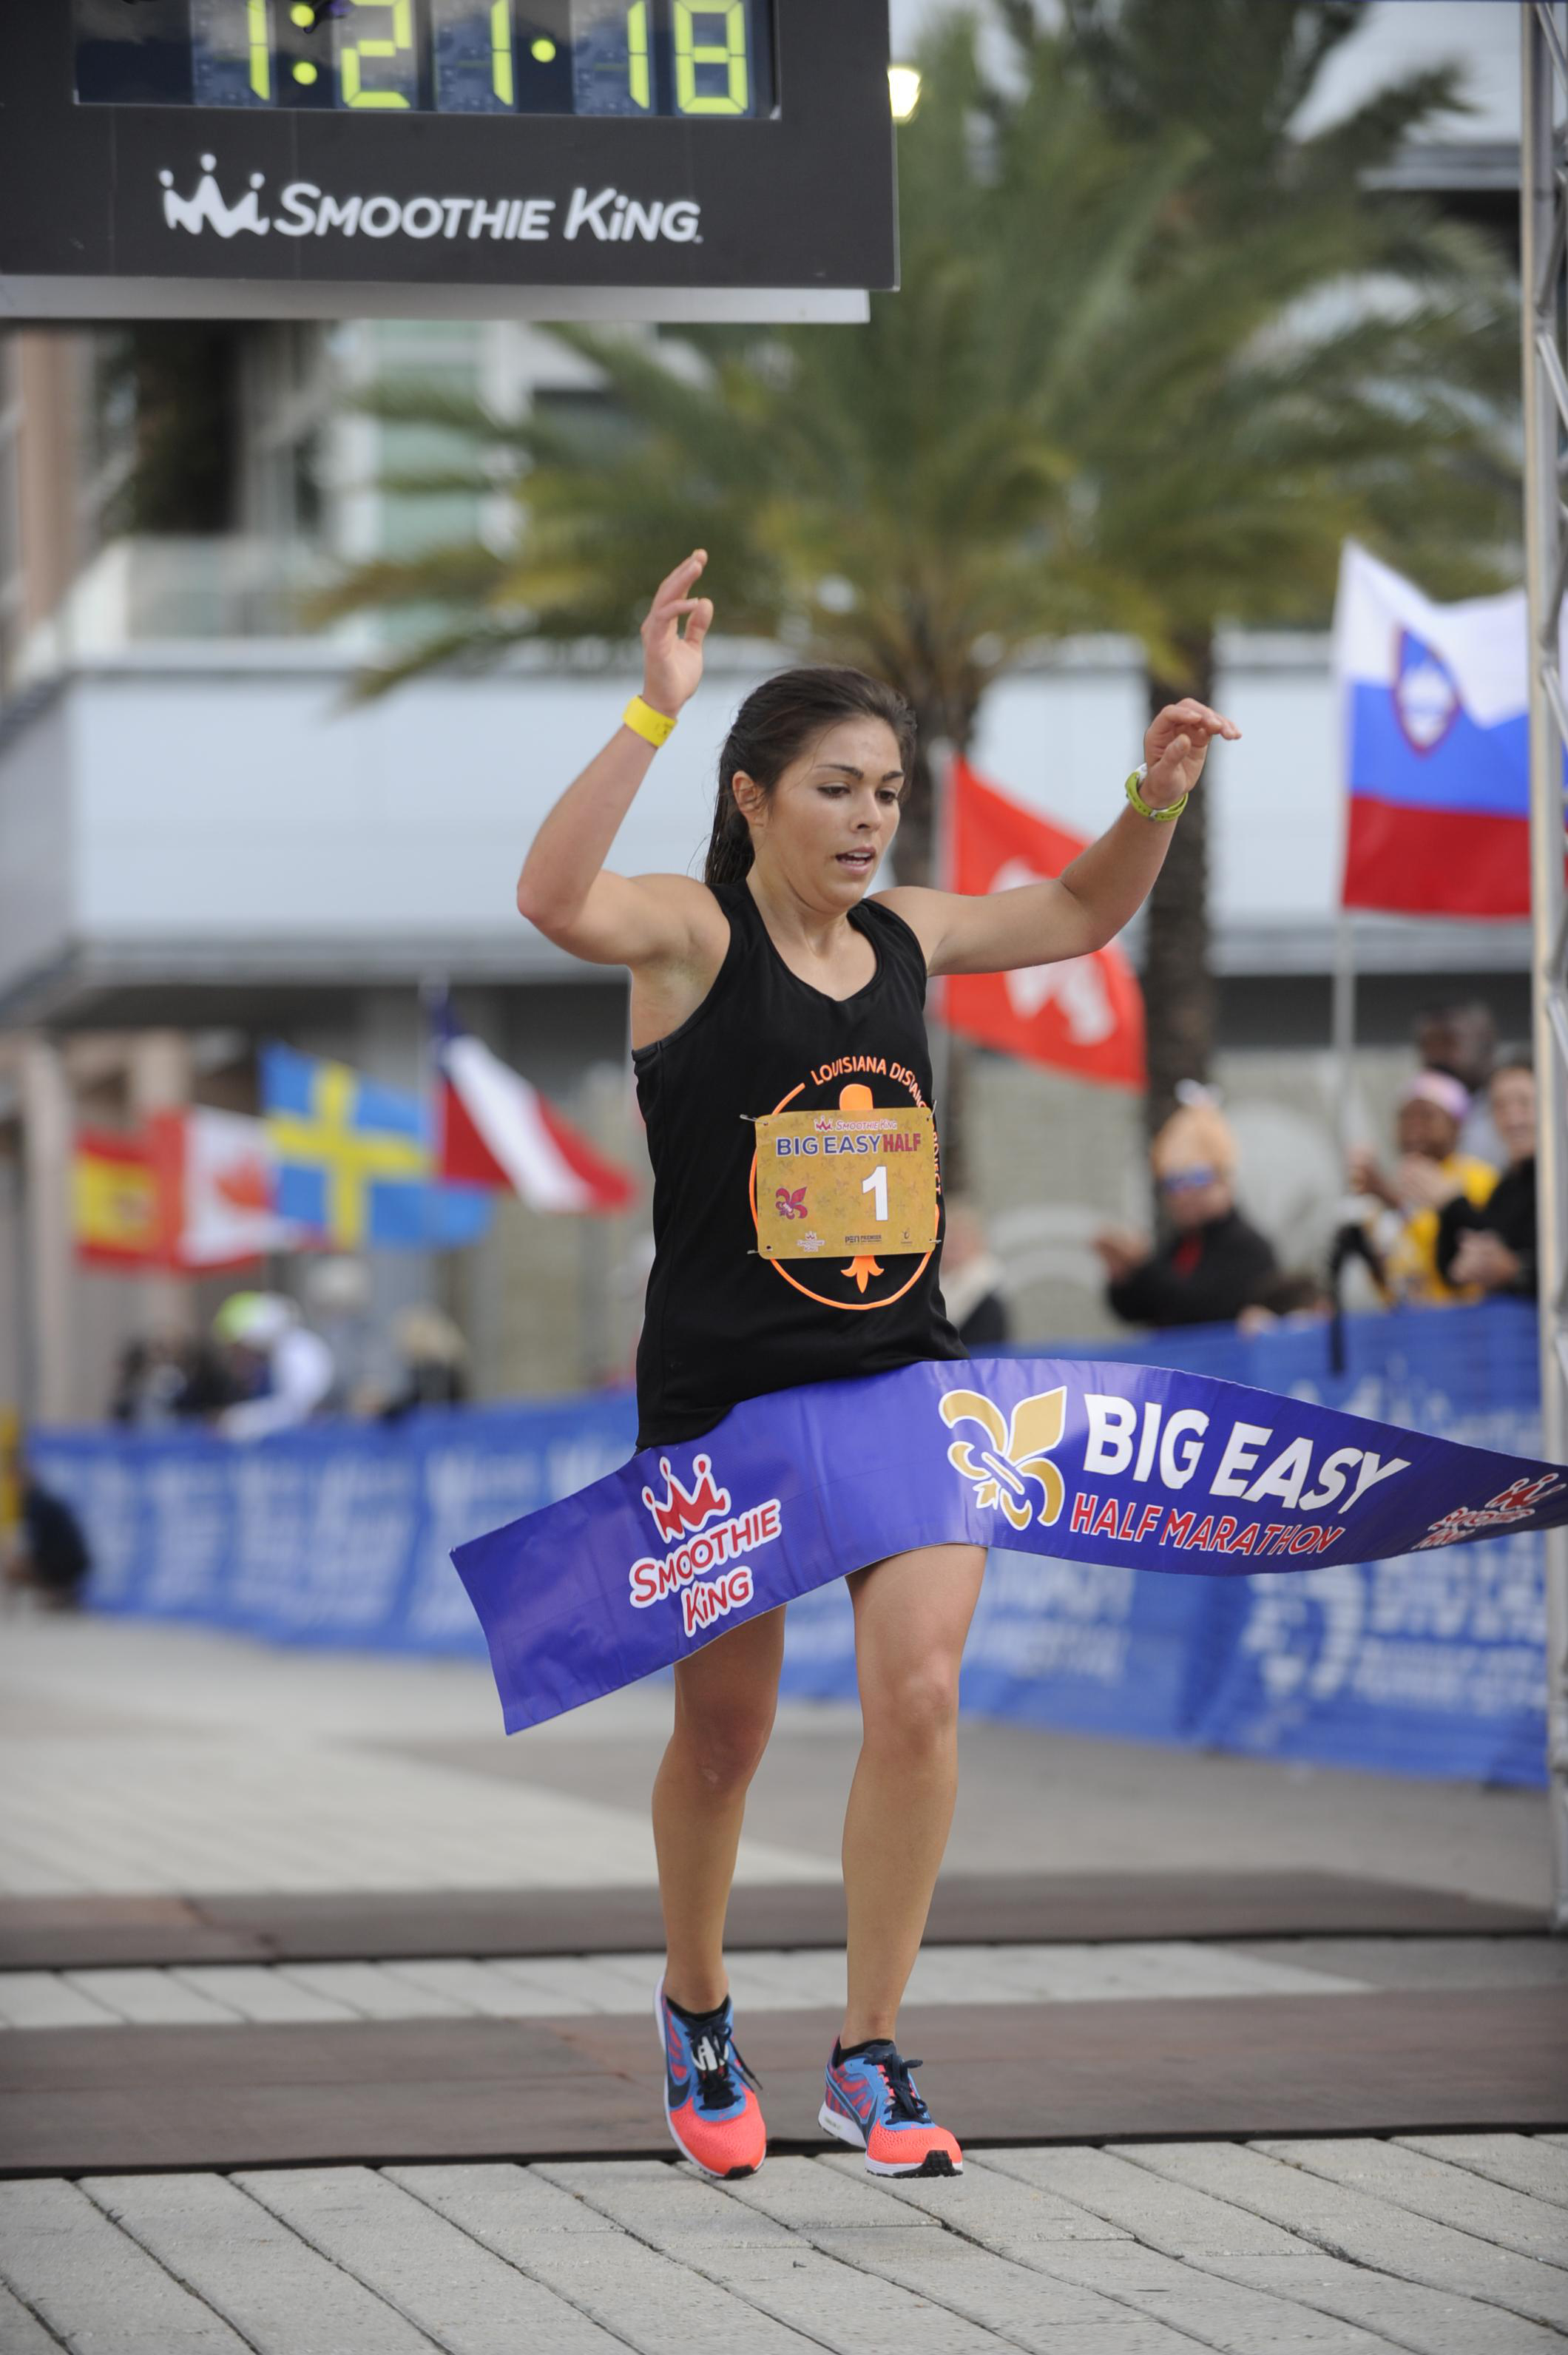 Big Easy Run Fest Results